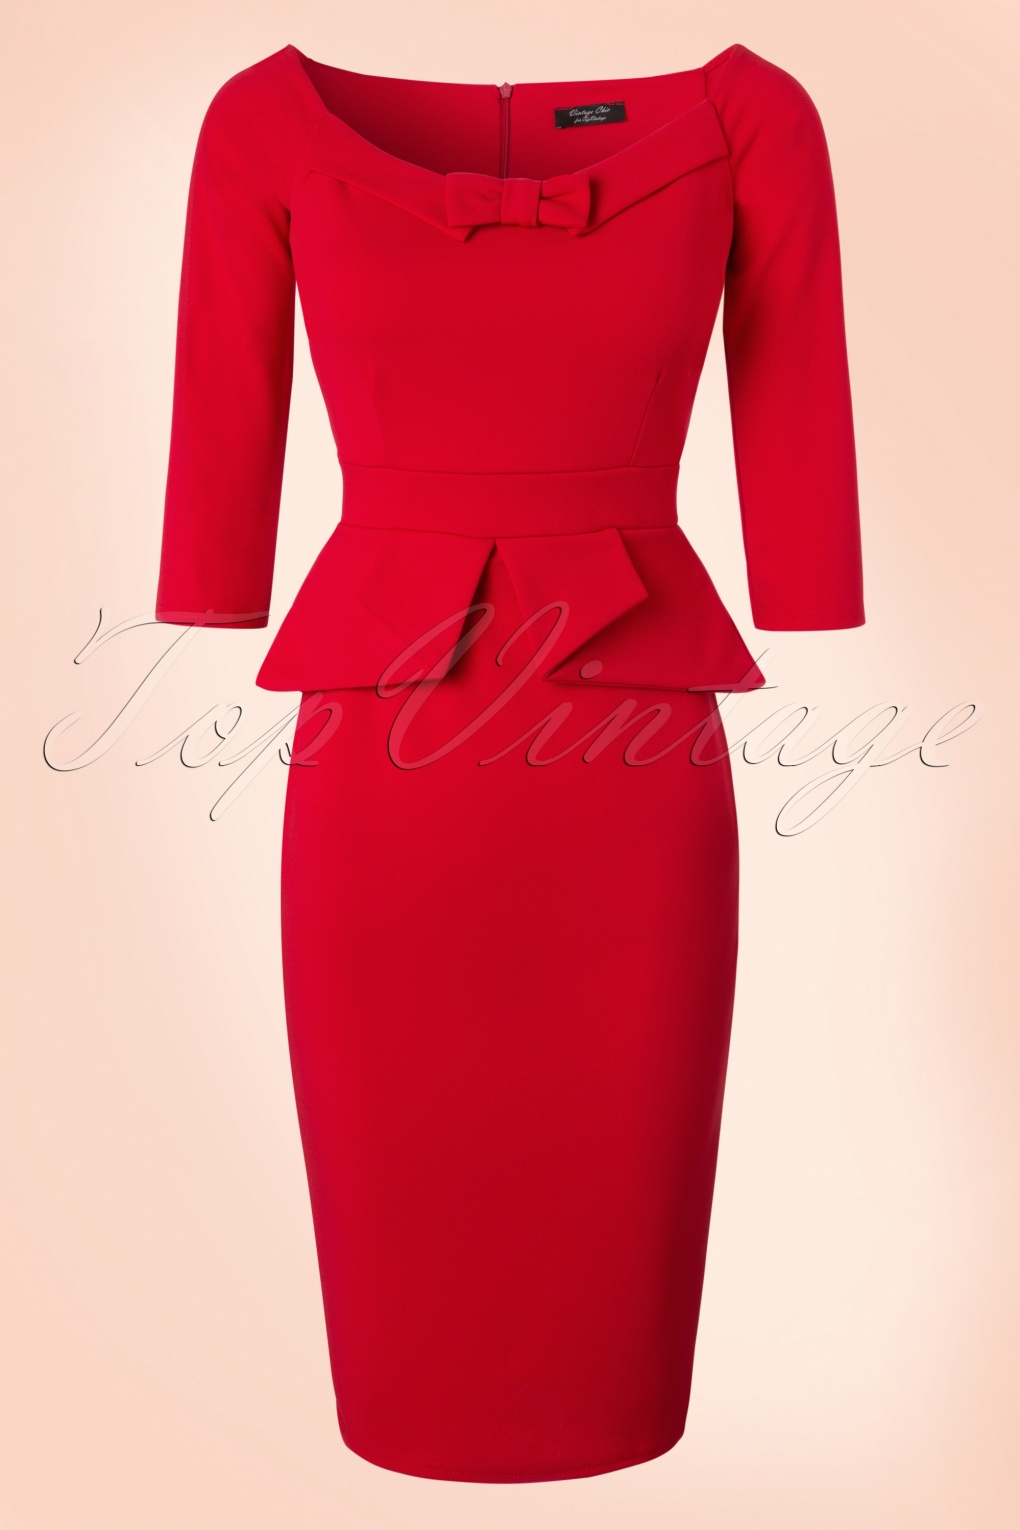 1940s Pinup Dresses for Sale 50s Paloma Peplum Pencil Dress in Lipstick Red £50.00 AT vintagedancer.com